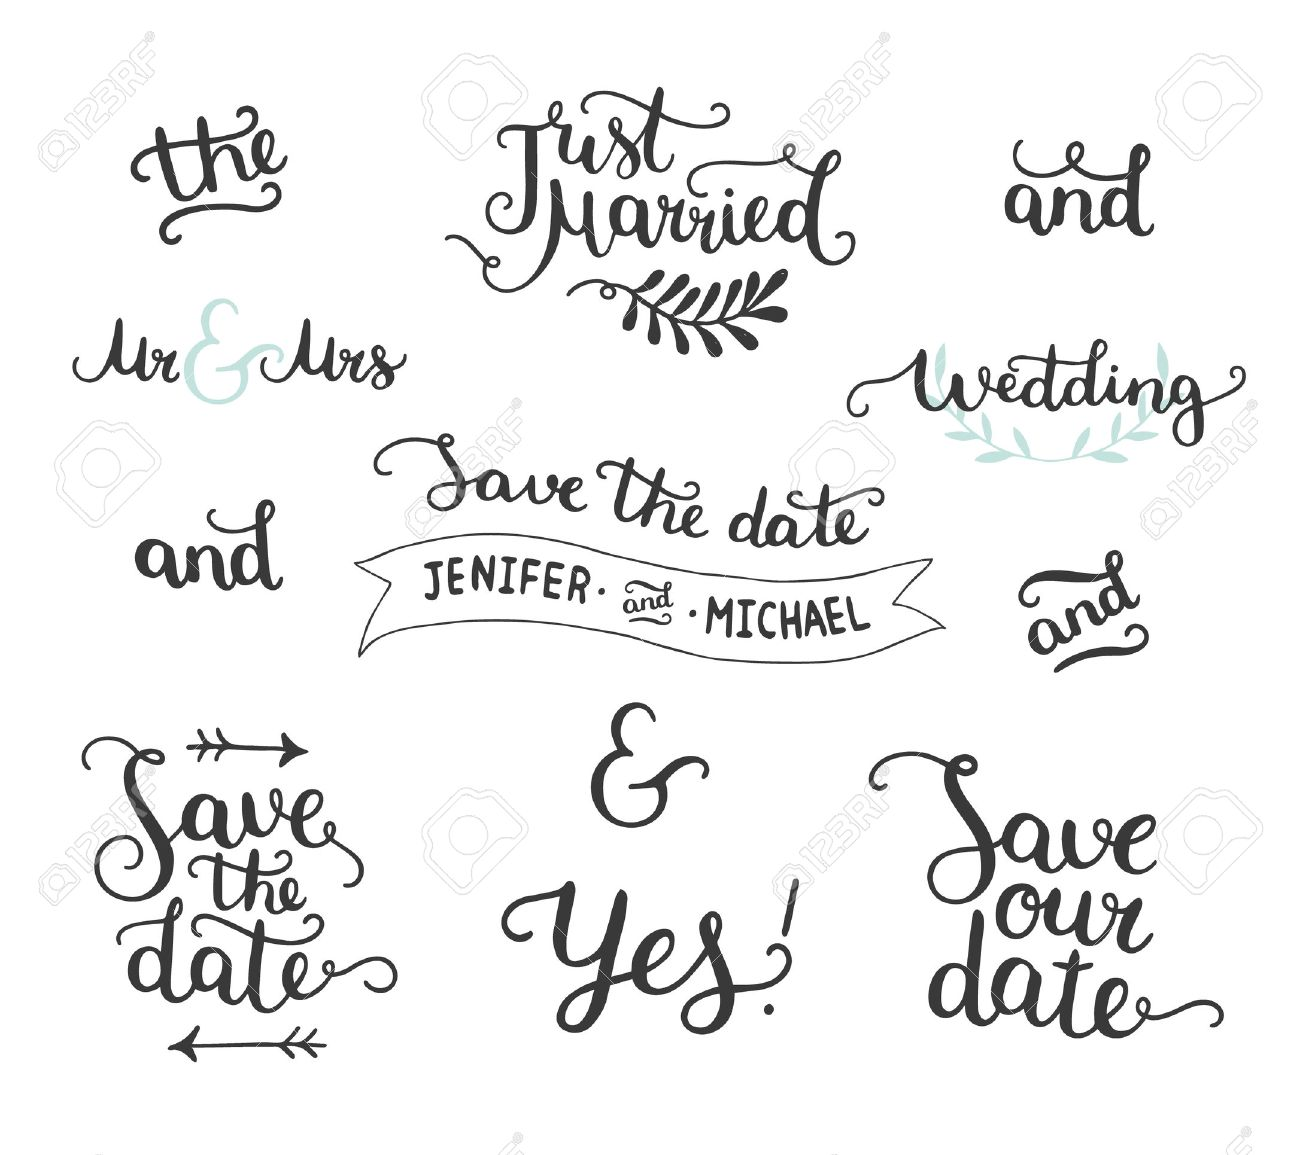 Save the date collection with hand drawn lettering, ampersands and catchwords. Vector set for design wedding invitations, photo overlays and save the date cards - 50991873